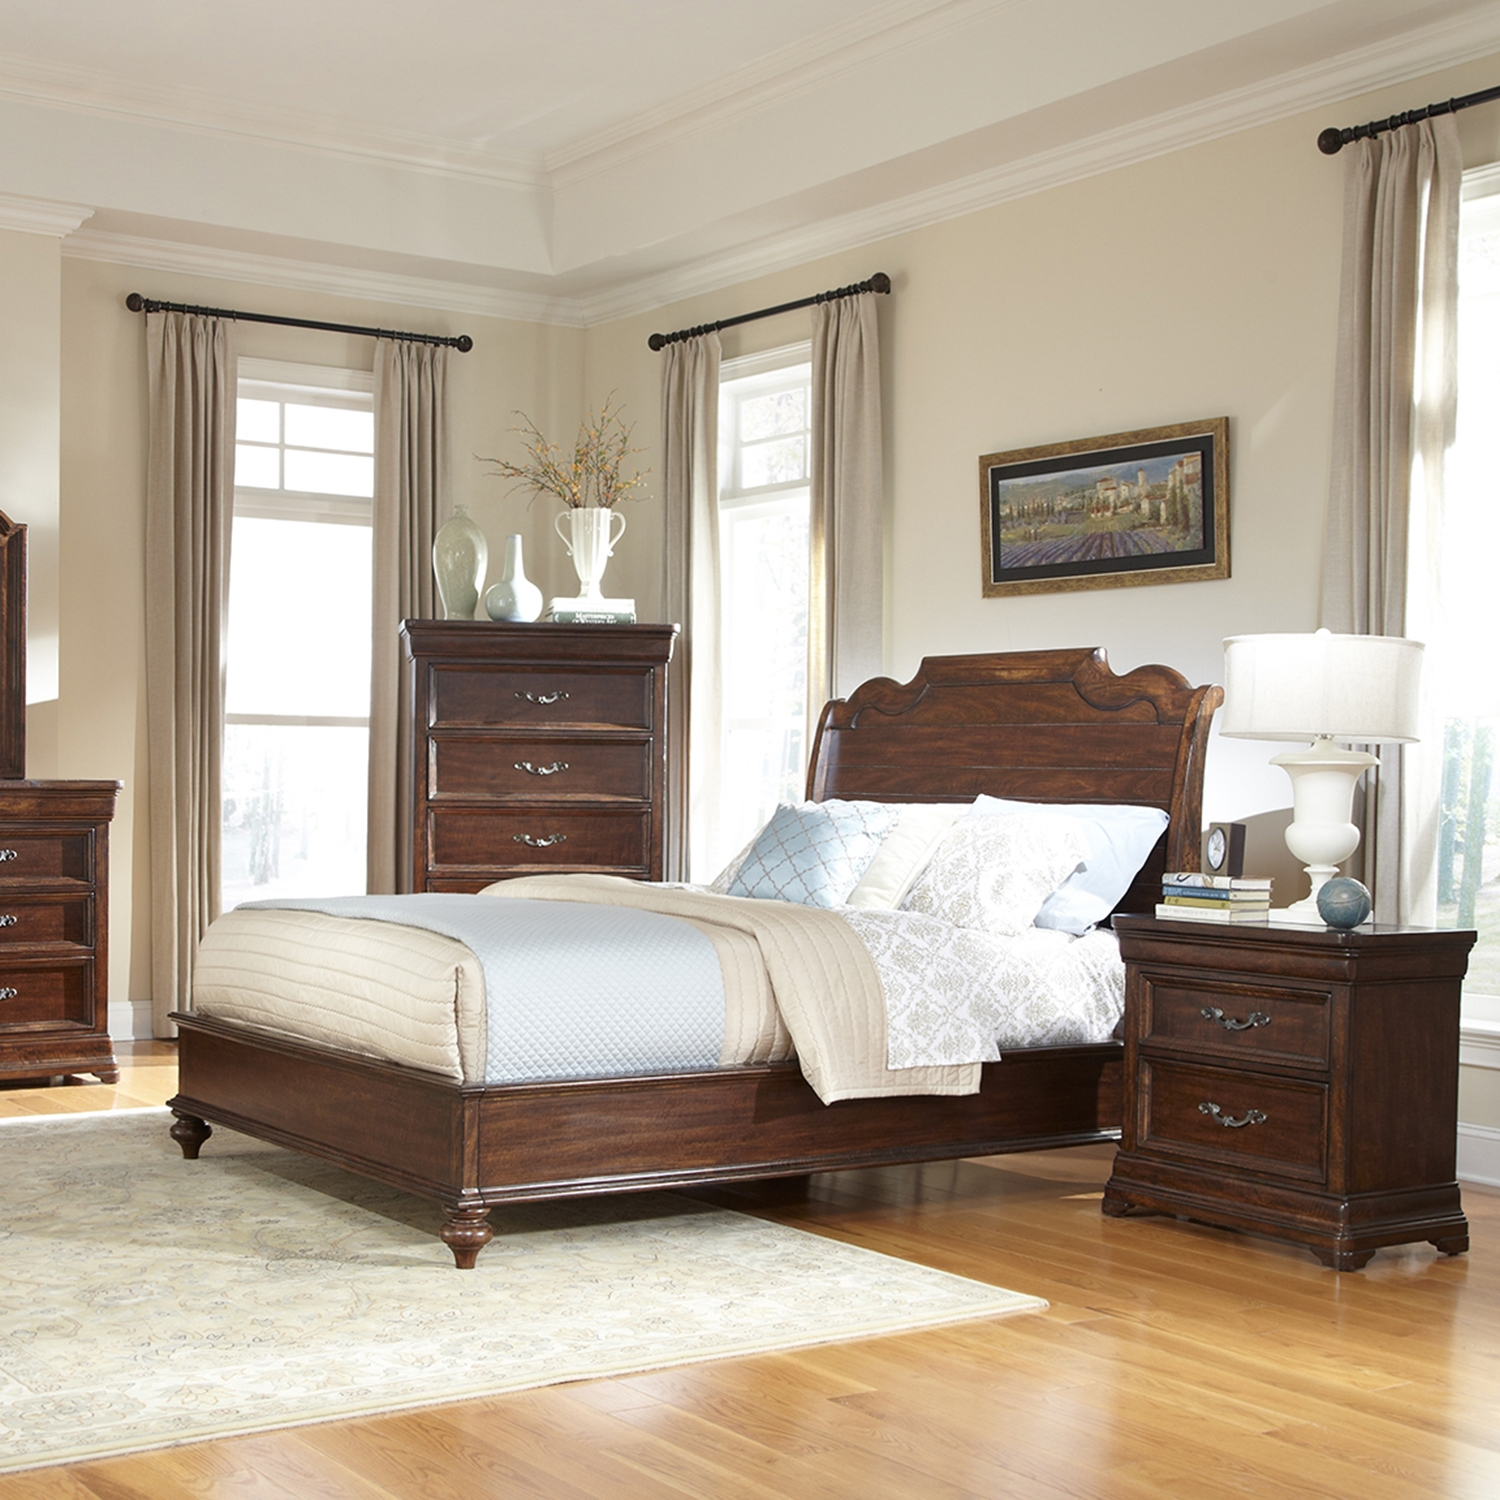 Signature King Sleigh Bed Set in Rich Dark Brown - AW-8000-KSLE-SET